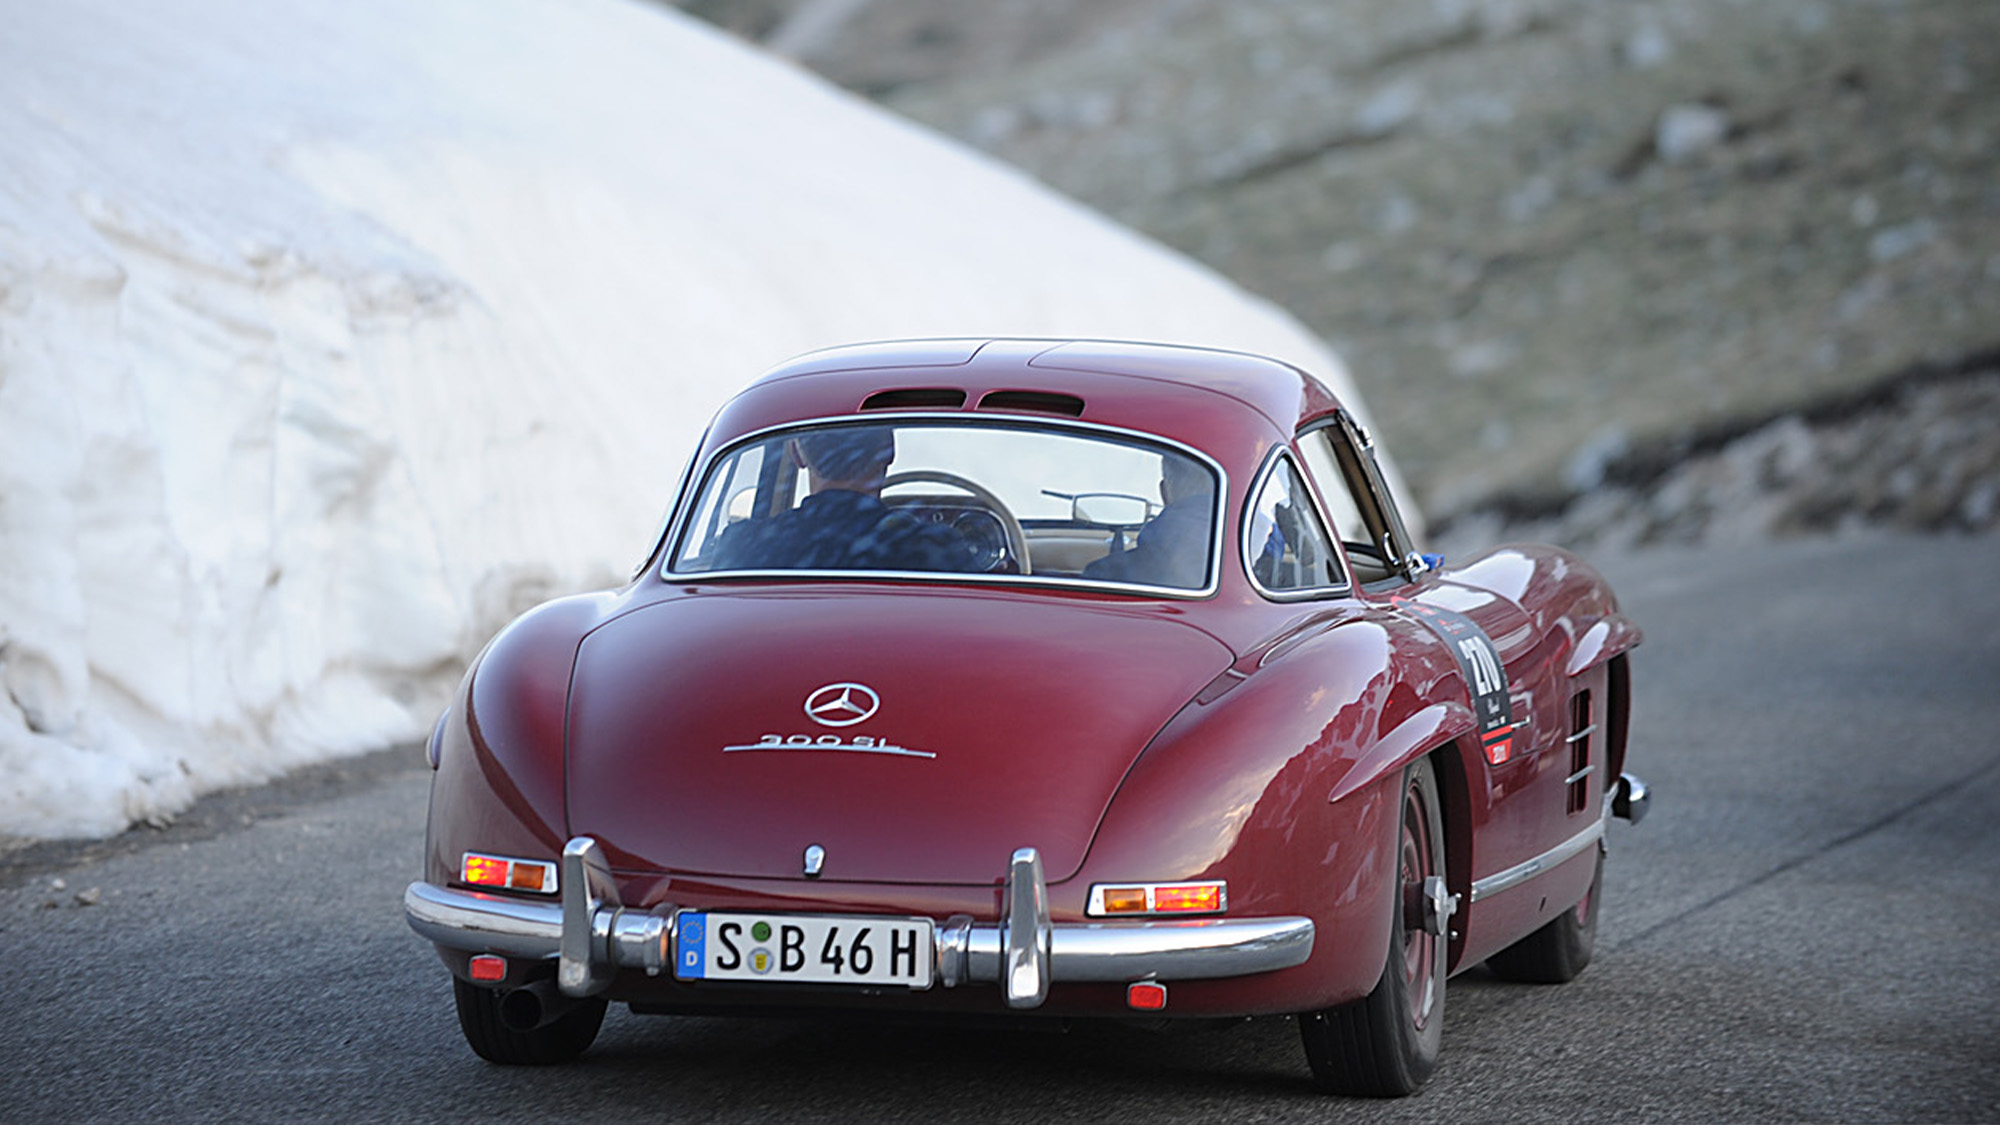 Mercedes 300 SL in snow on the 2011 Mille Miglia